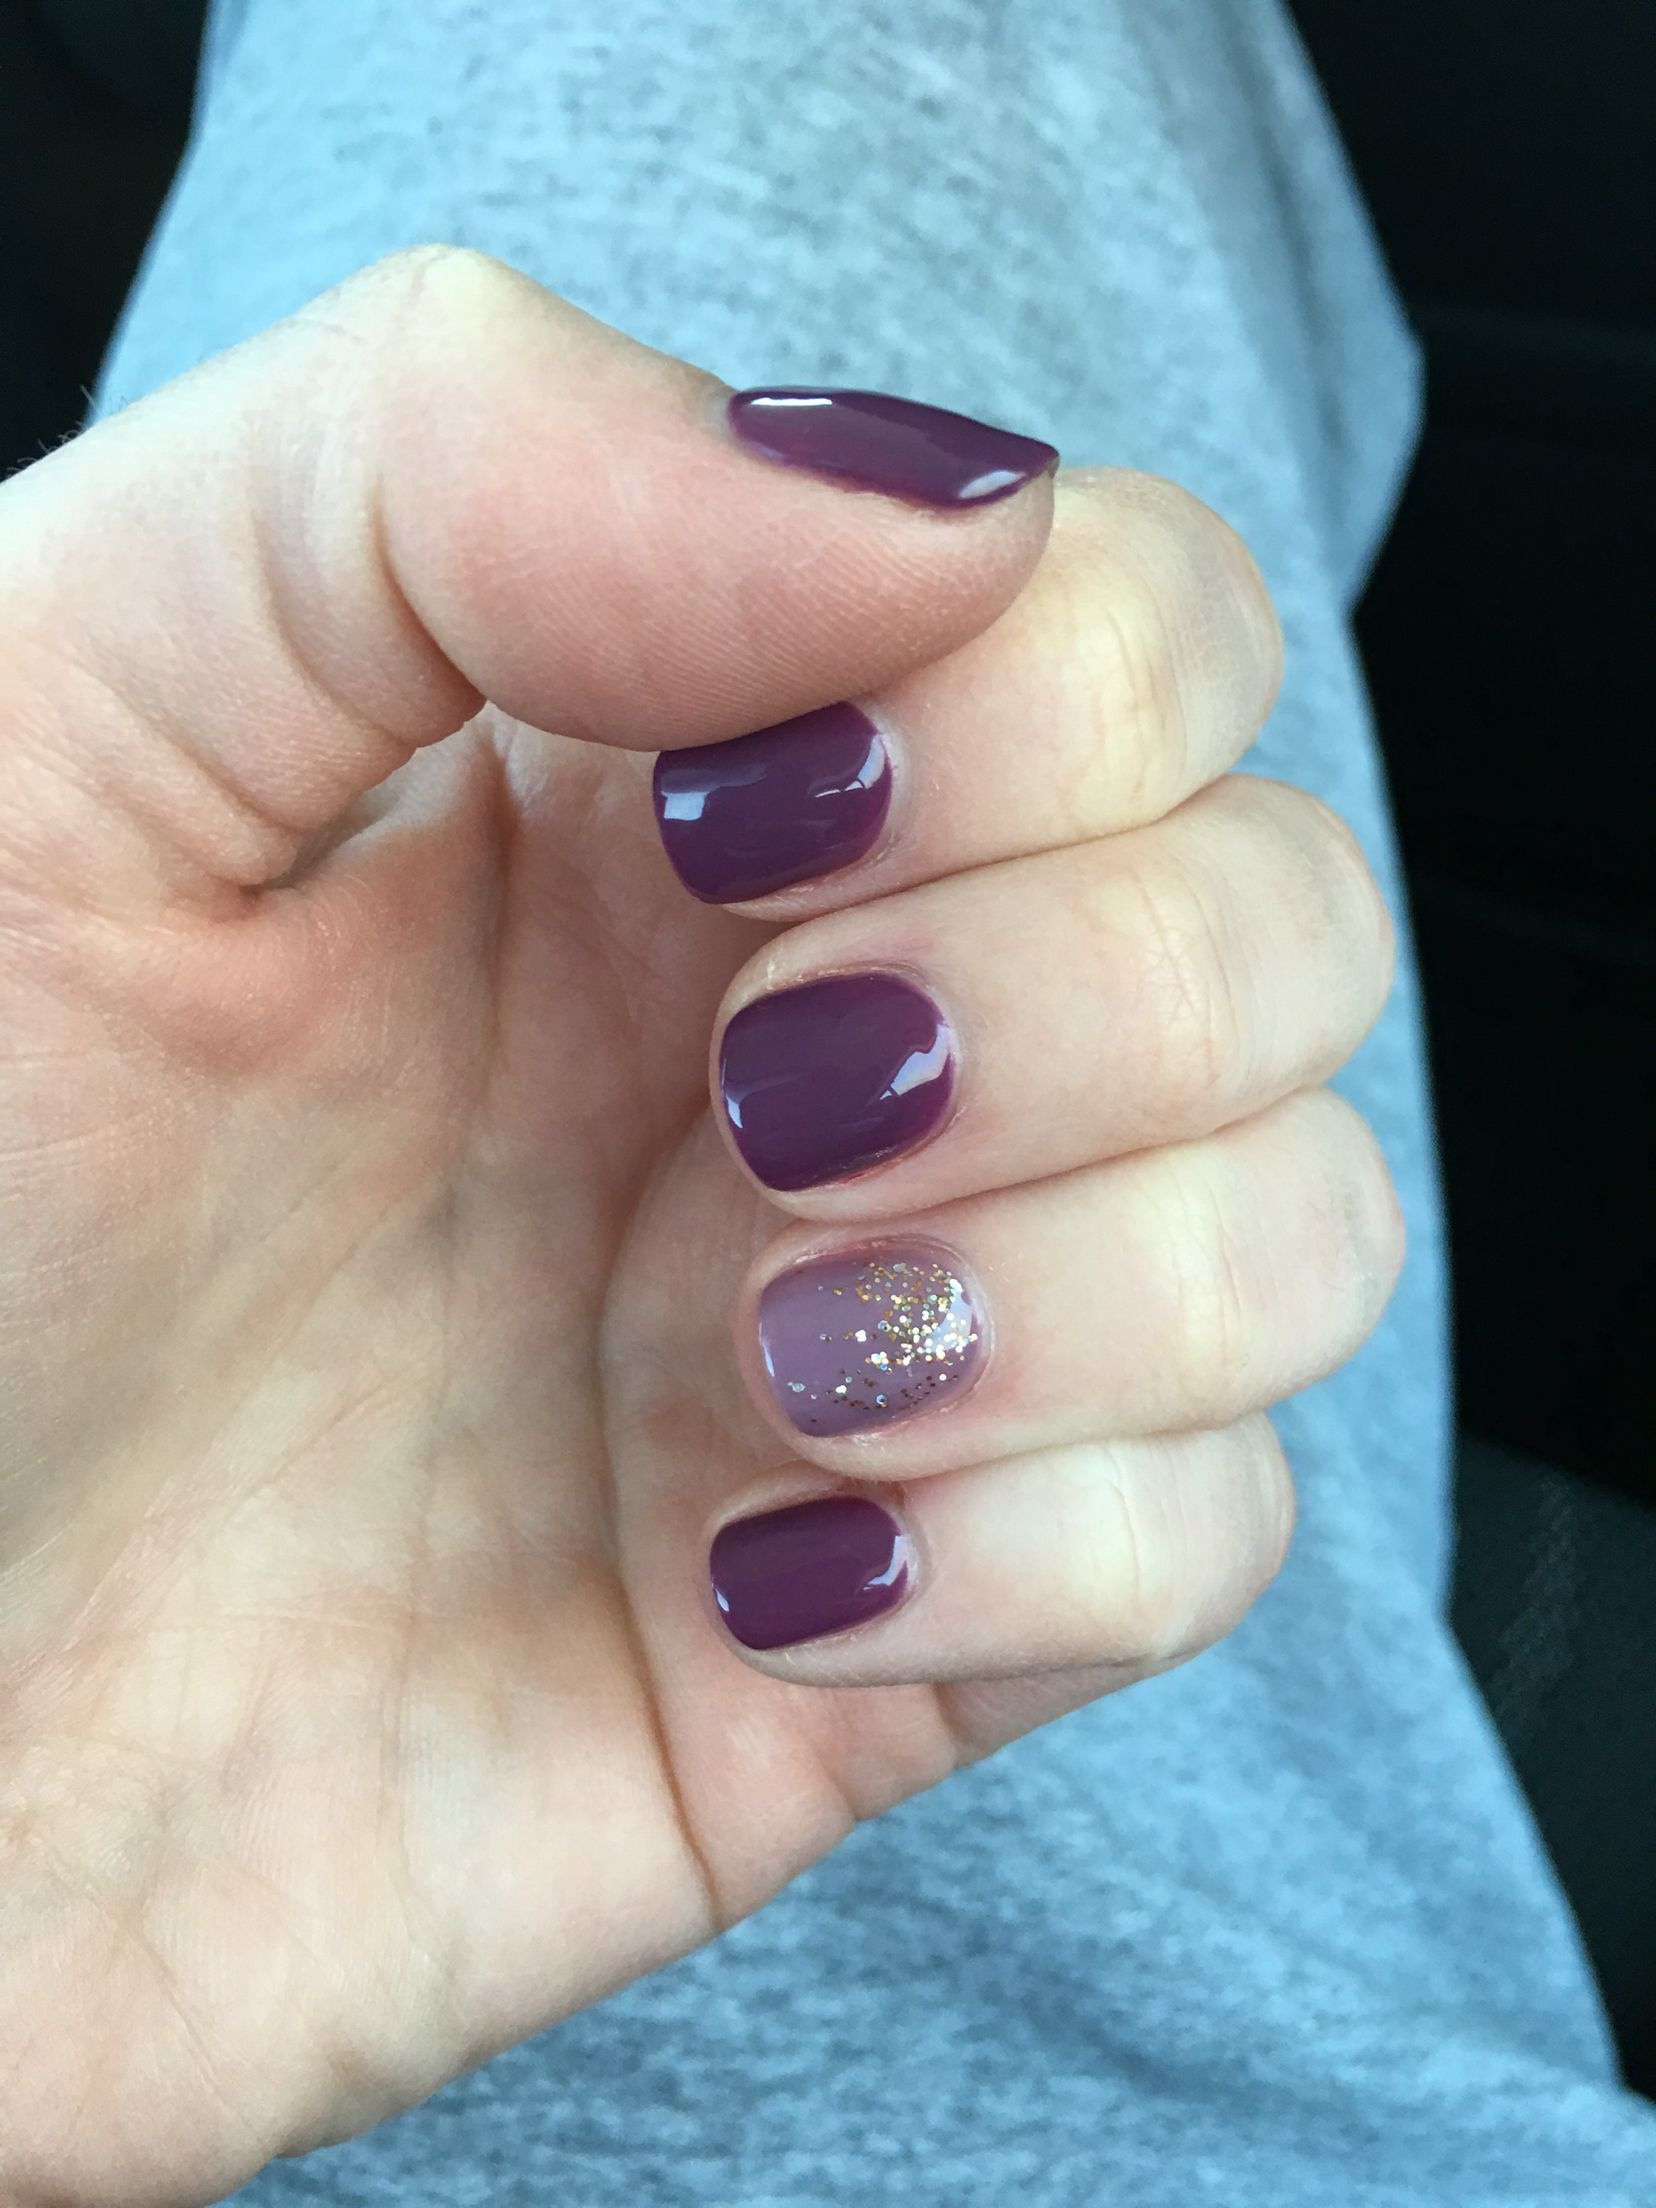 The Dark Purple Without The Accent Nail Nails Nail Art Nail